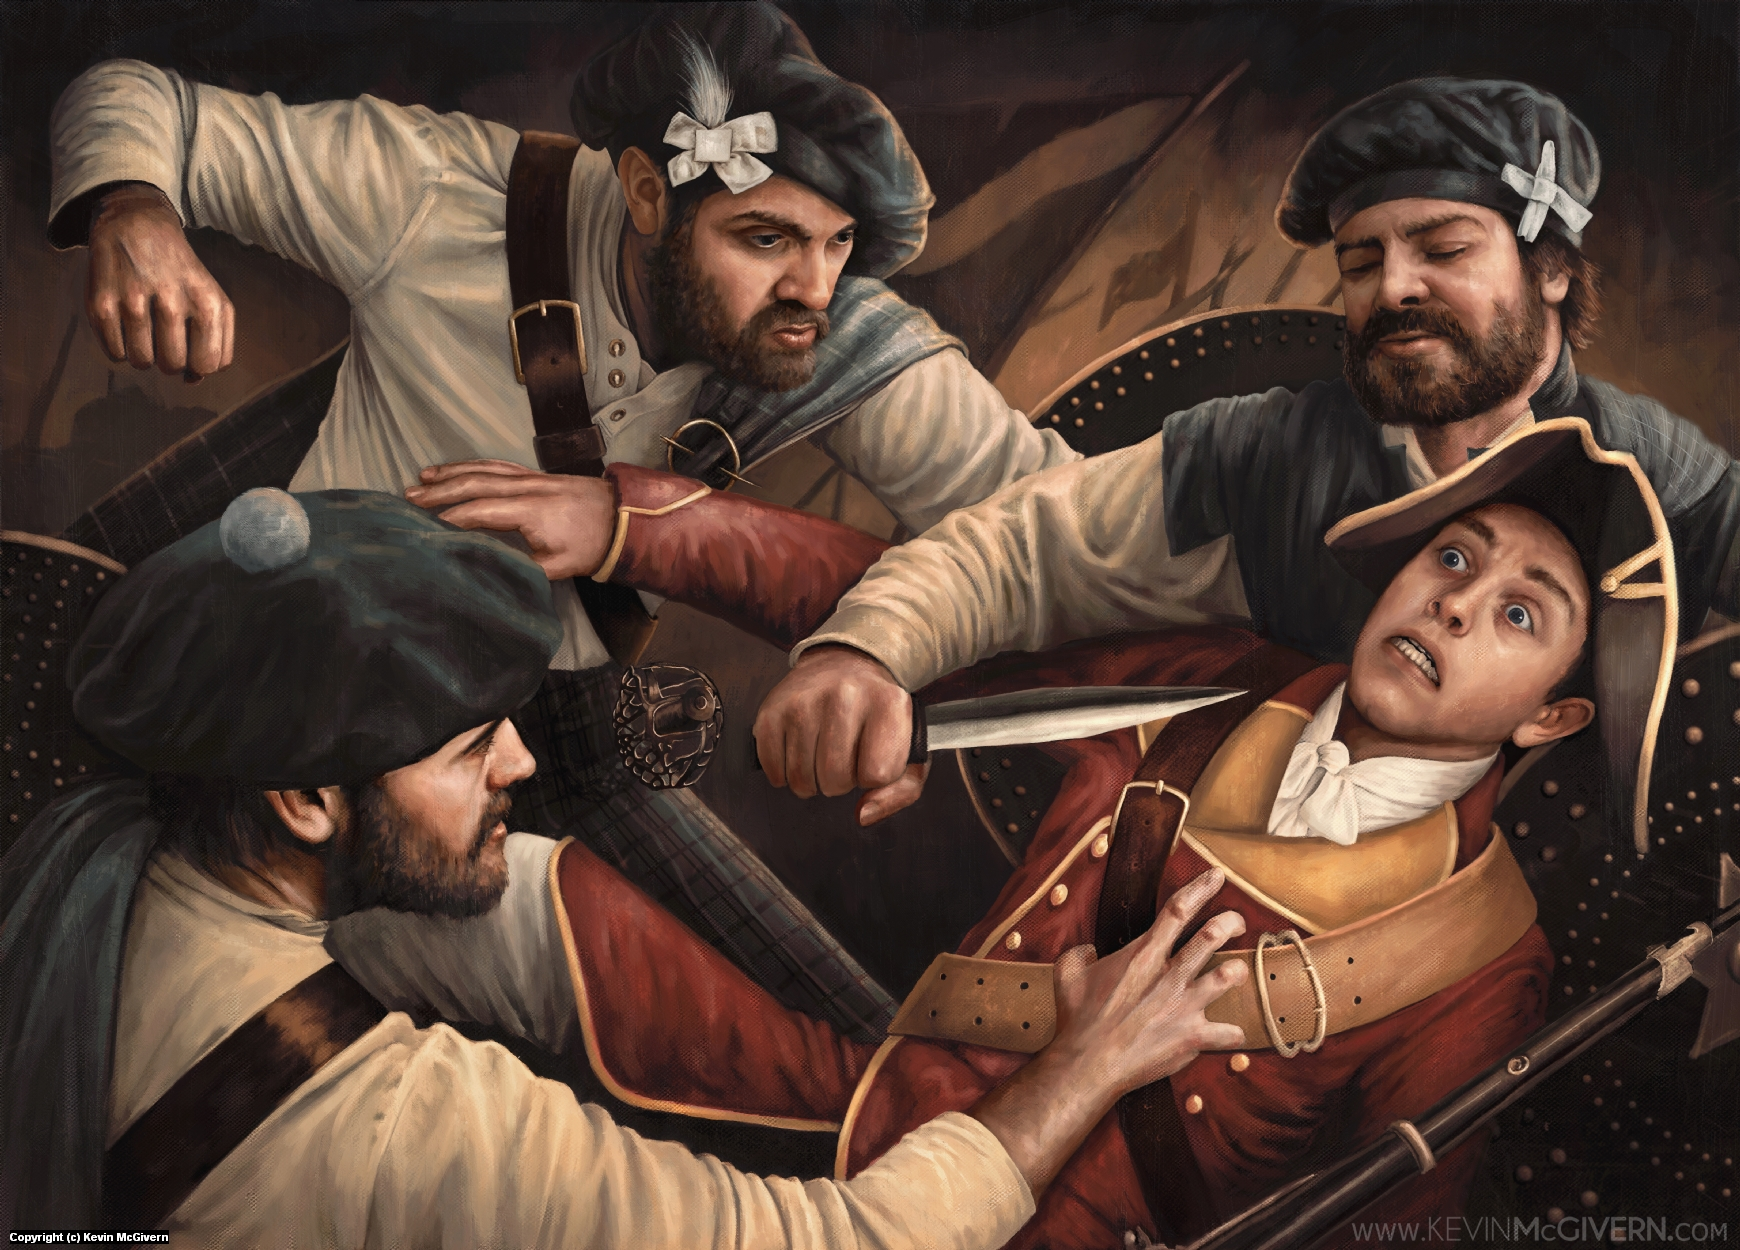 The Redcoat's Demise Artwork by Kevin McGivern